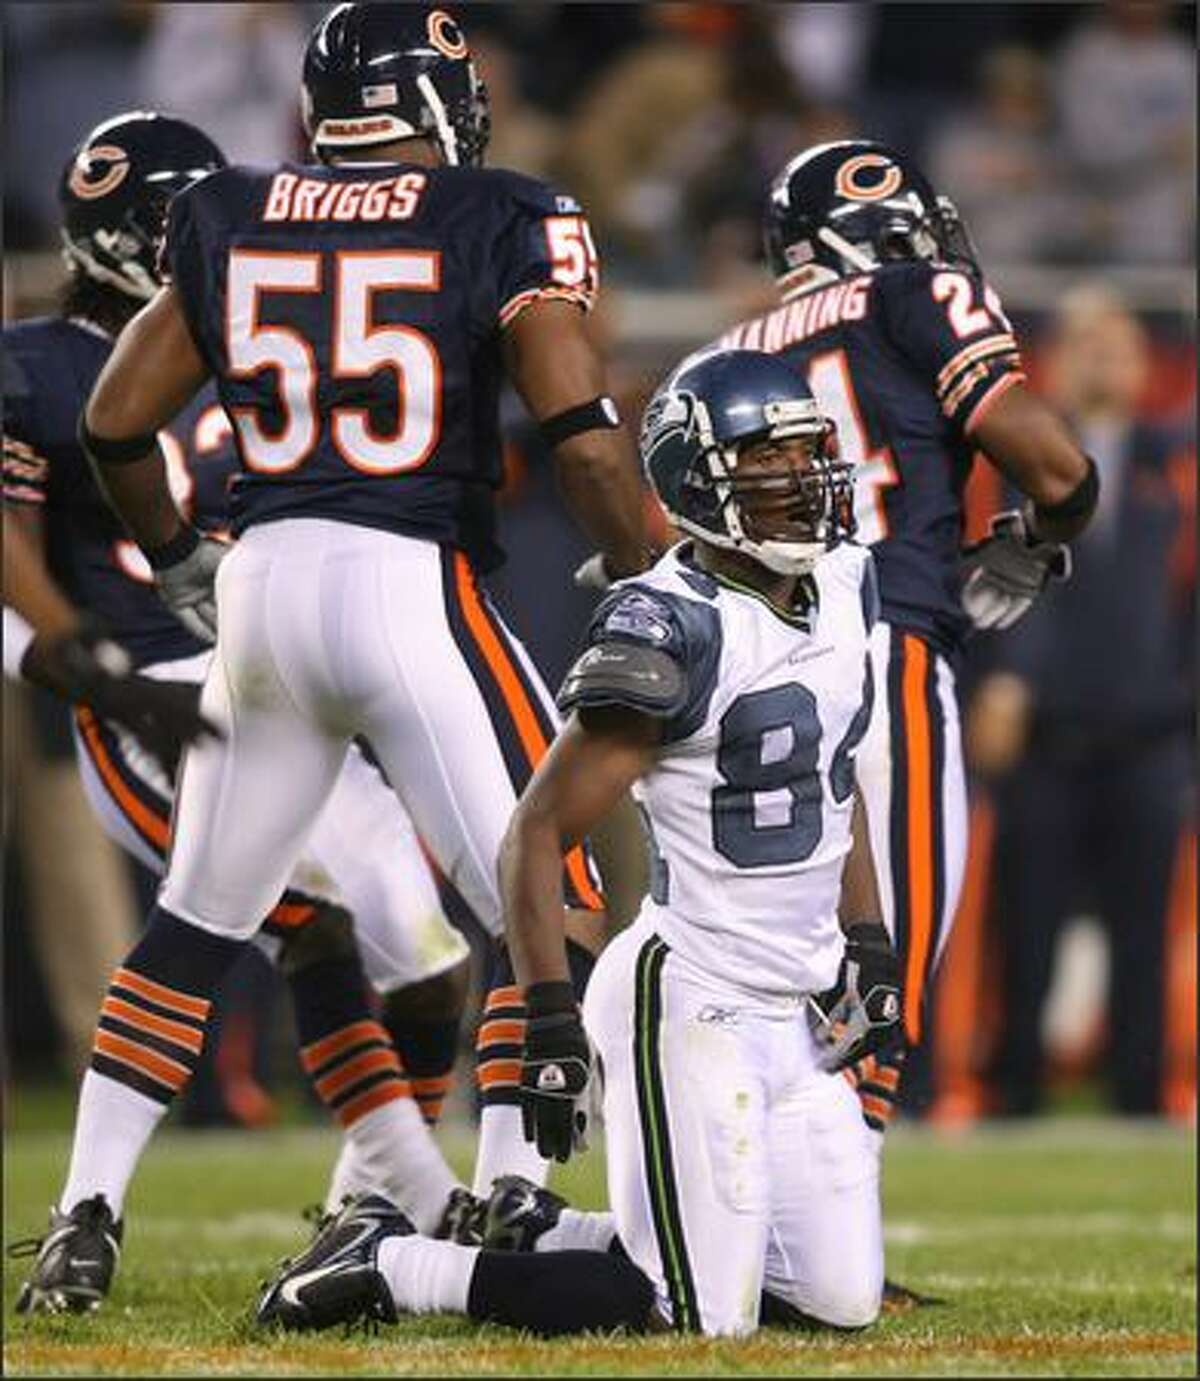 Bobby Engram shakes off a big hit after Bears cornerback Ricky Manning Jr. prevented the Seahawks receiver from hanging onto a pass in the first quarter.